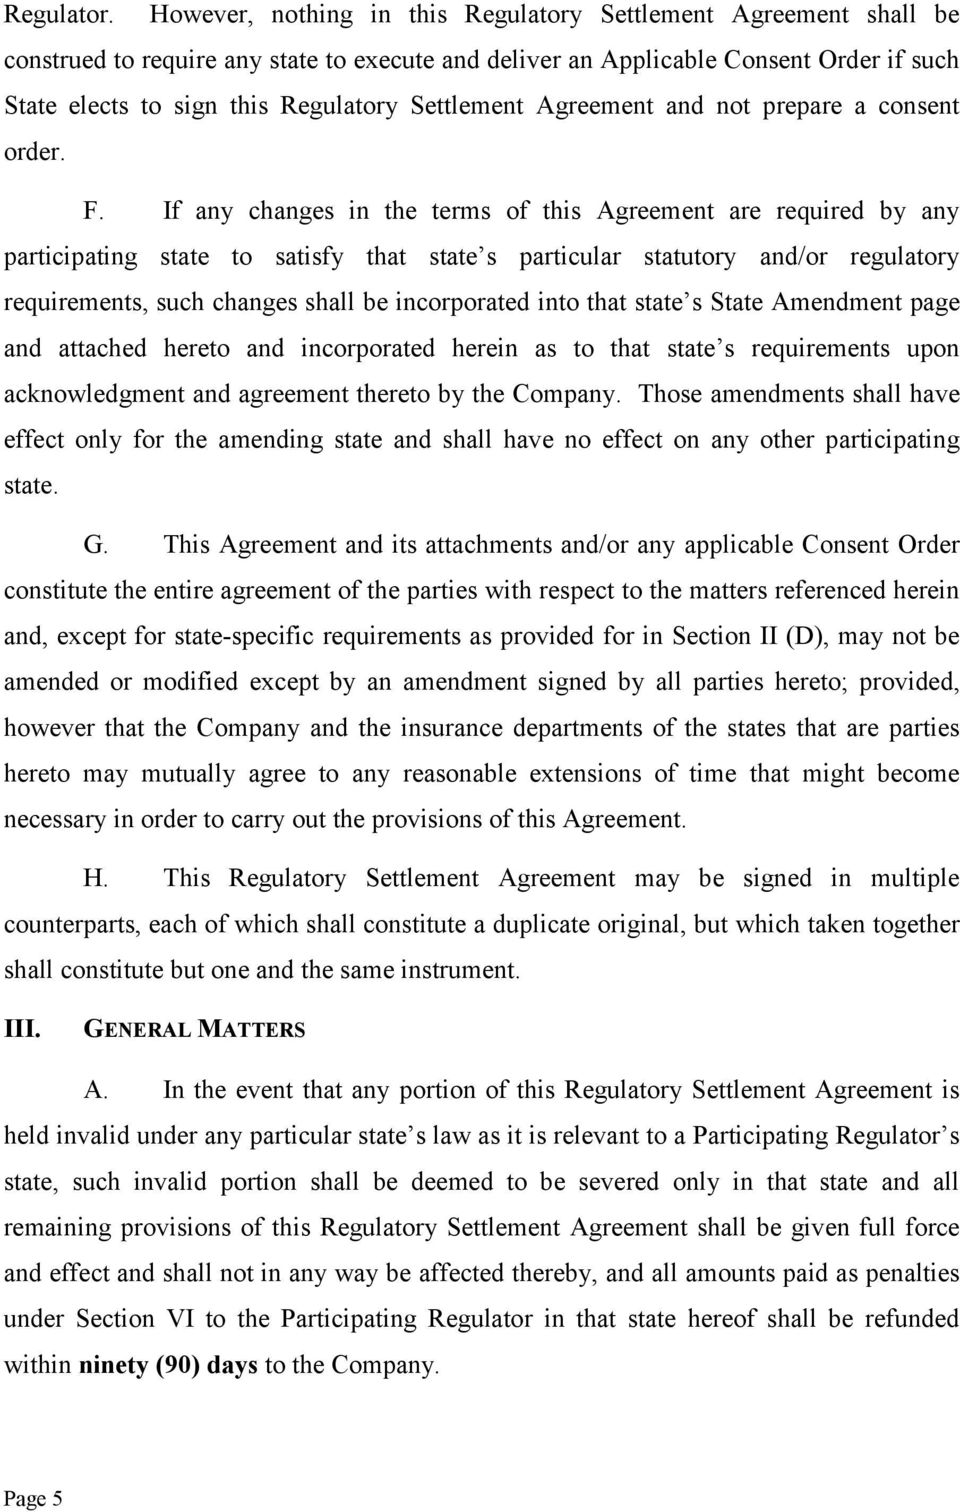 Settlement Agreement and not prepare a consent order. F.